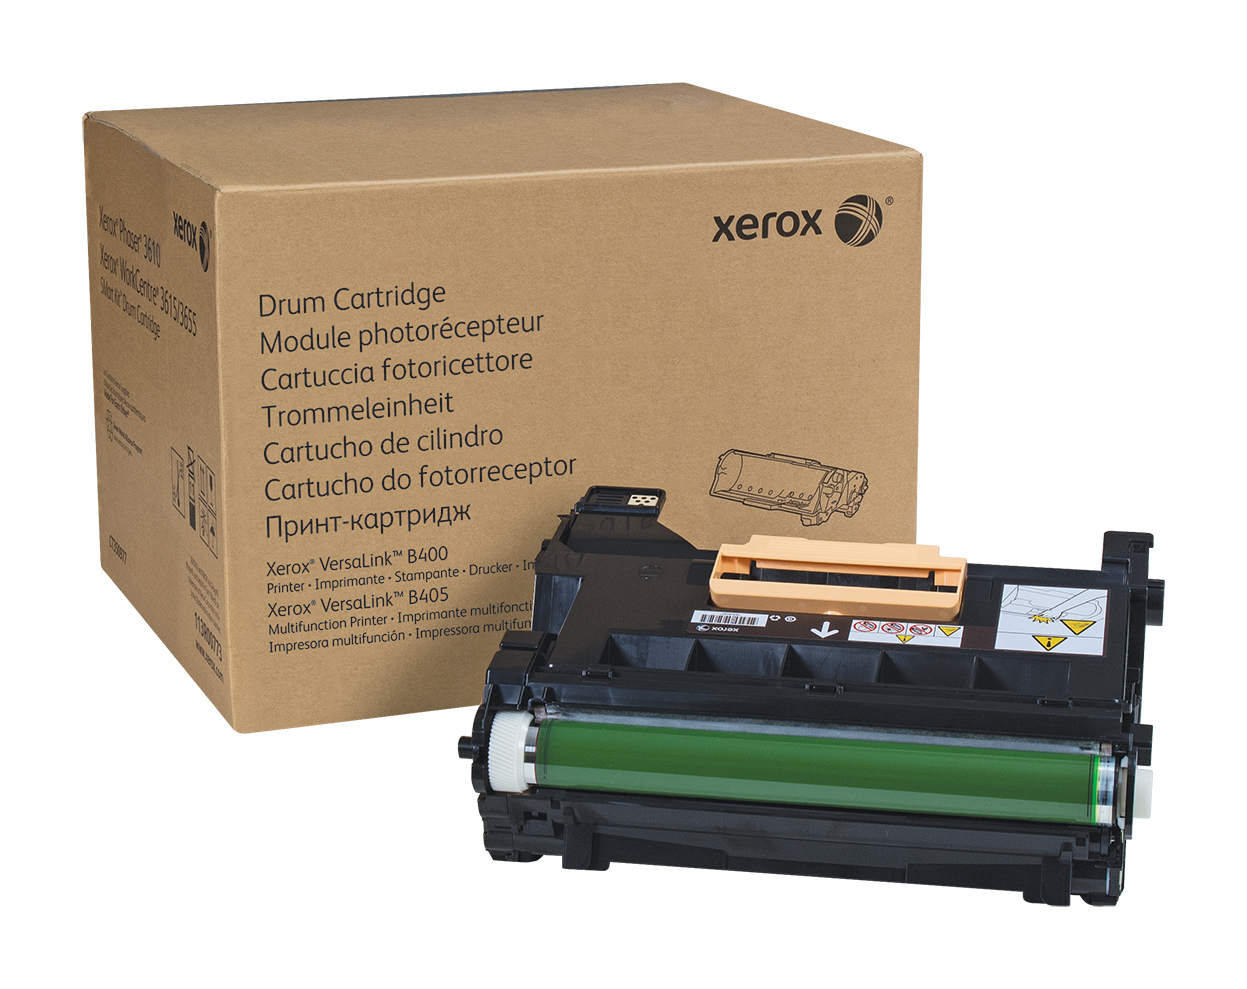 XEROX 101R00554 DRUM KIT, 65K PAGES